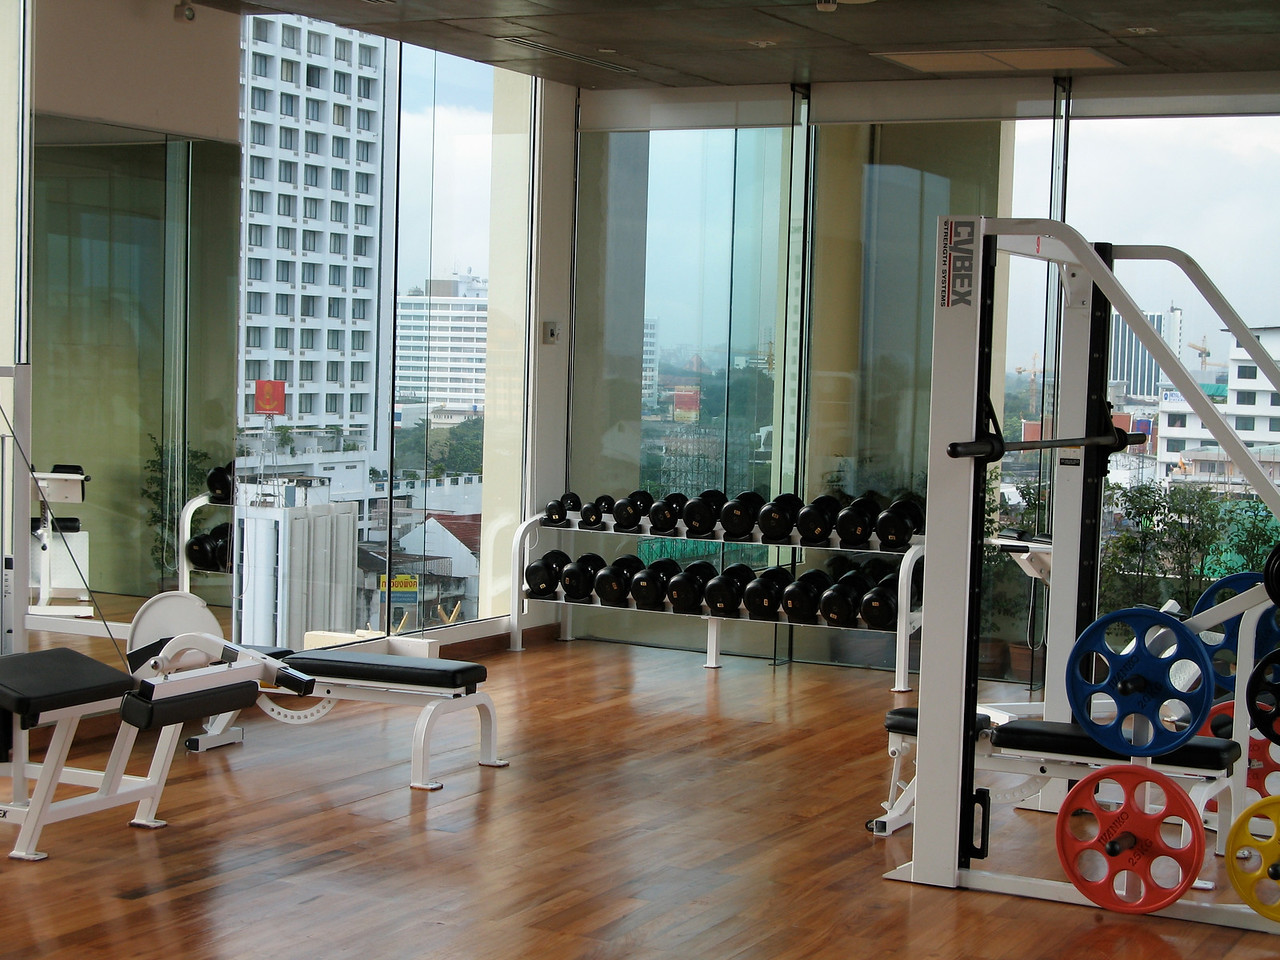 On the top level of the hotel, there's a full size workout room and yoga area on the rooftop.  You have 360 degree views of Chiang Mai through floor to ceiling windows.